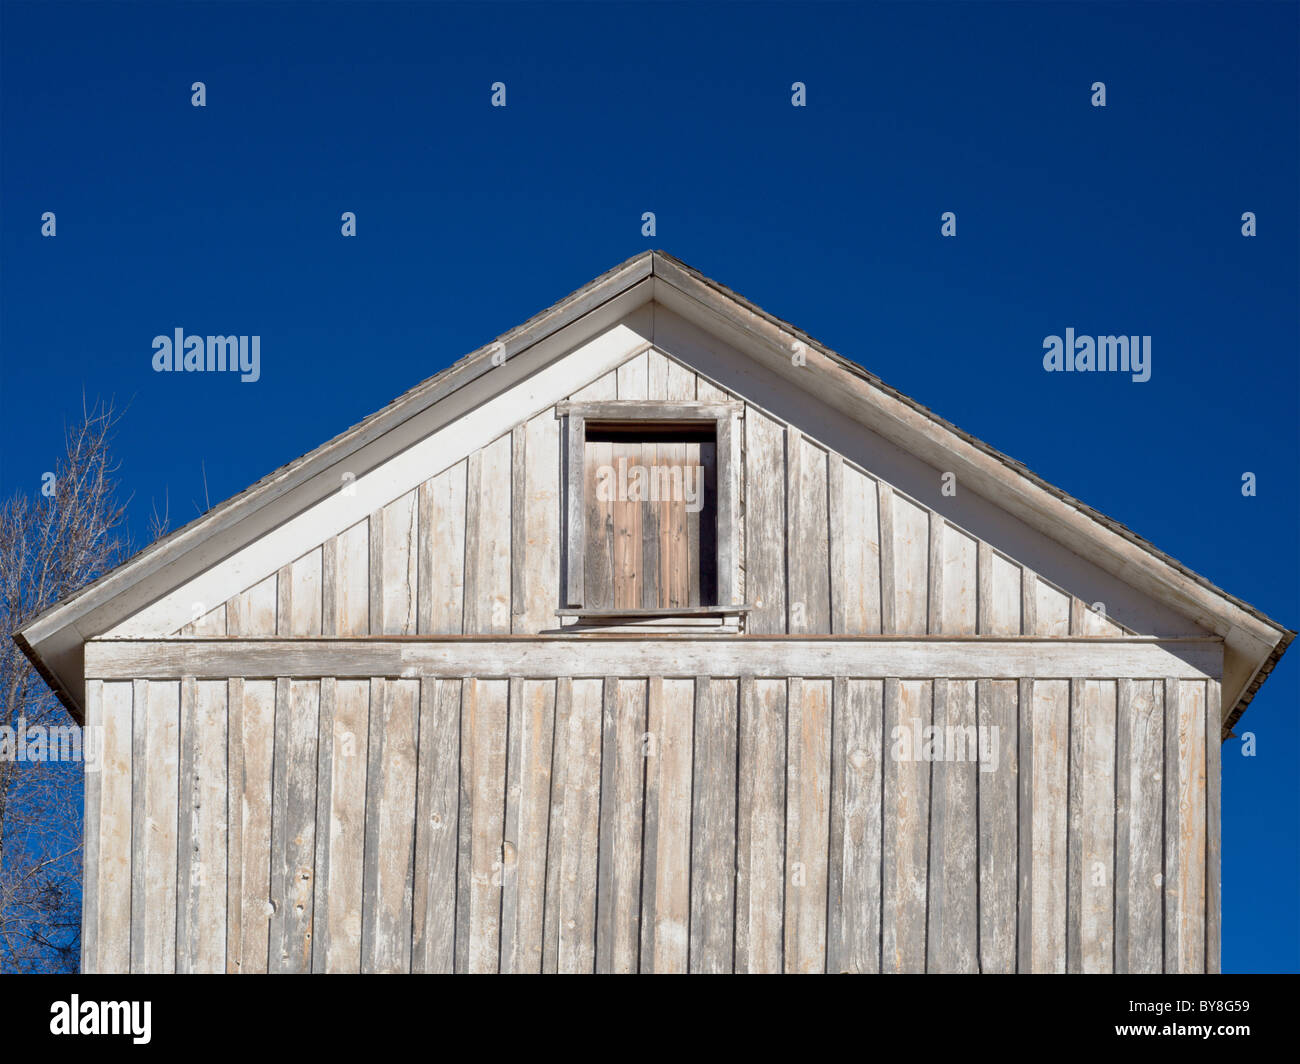 An old wooden building stands under a blue sky, on the Mescalero American Indian reservation, New Mexico. Stock Photo